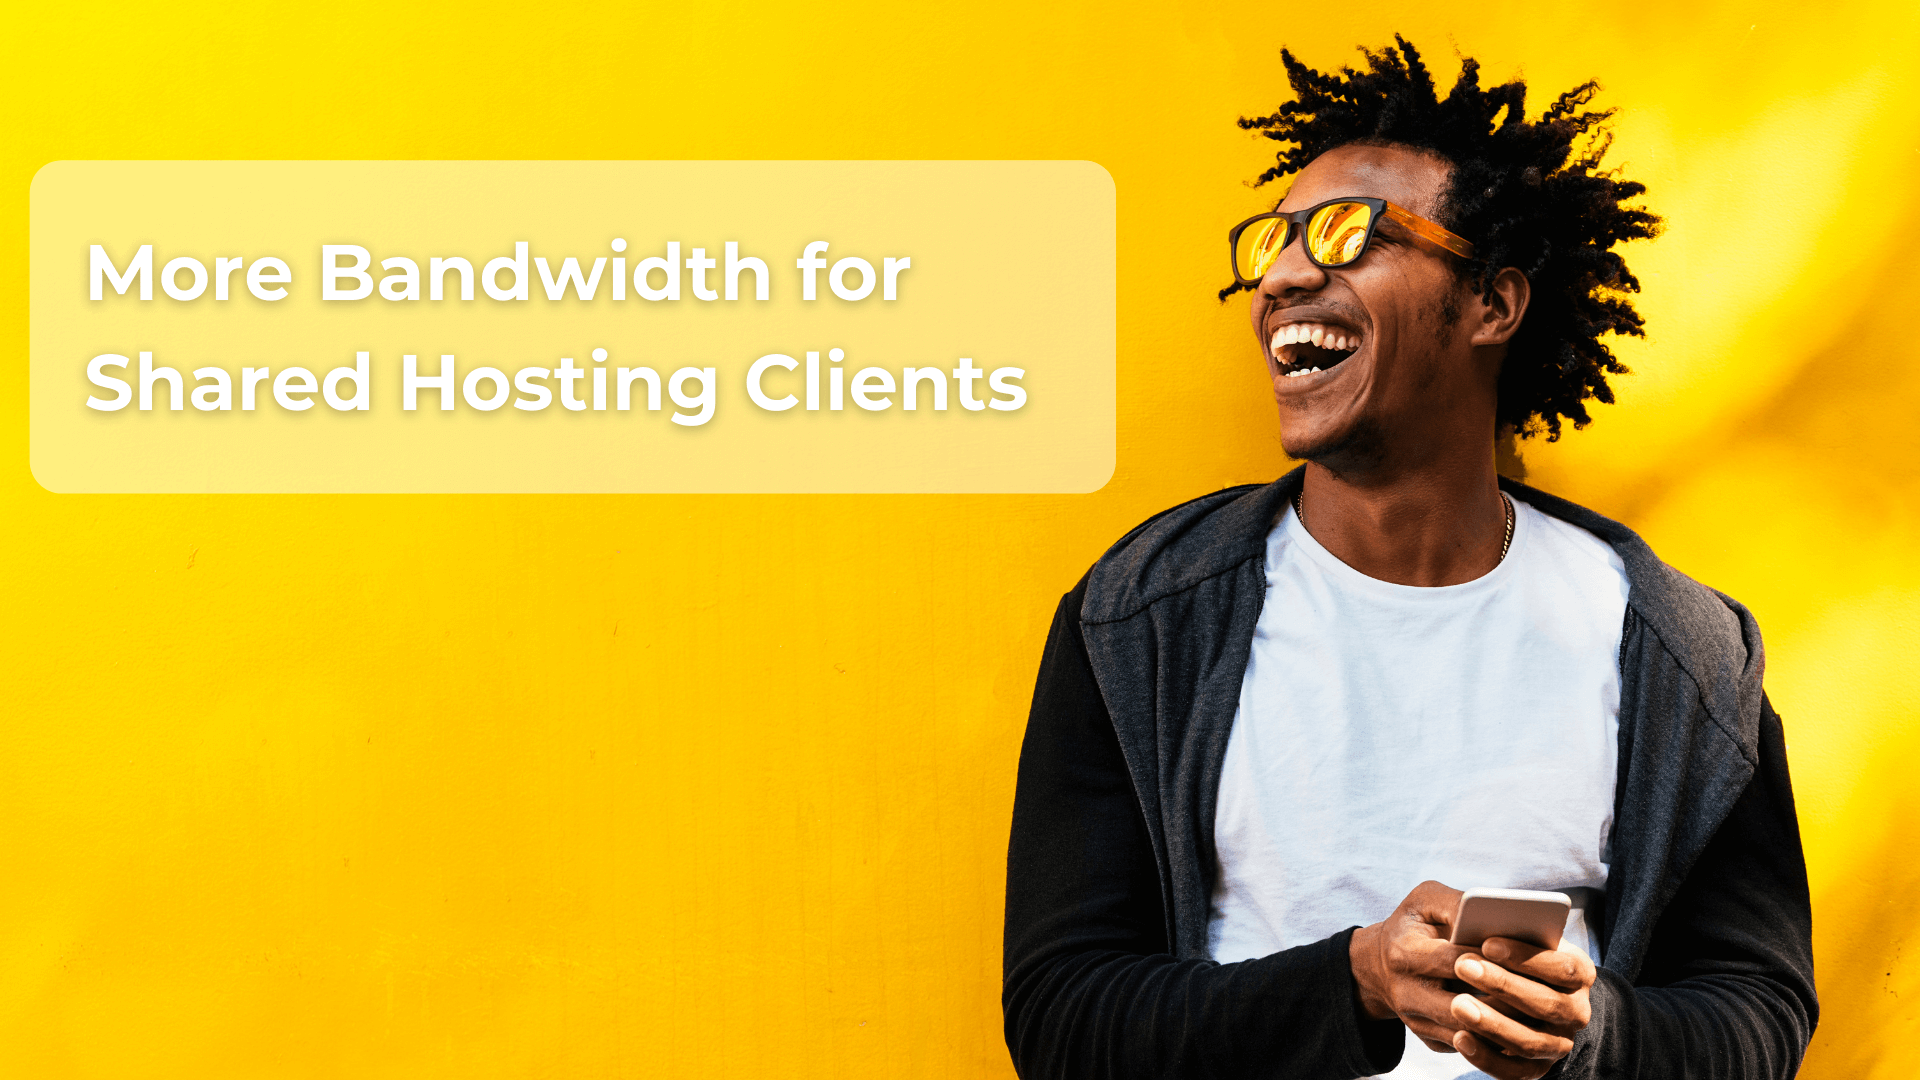 More Bandwidth for Shared Hosting Clients